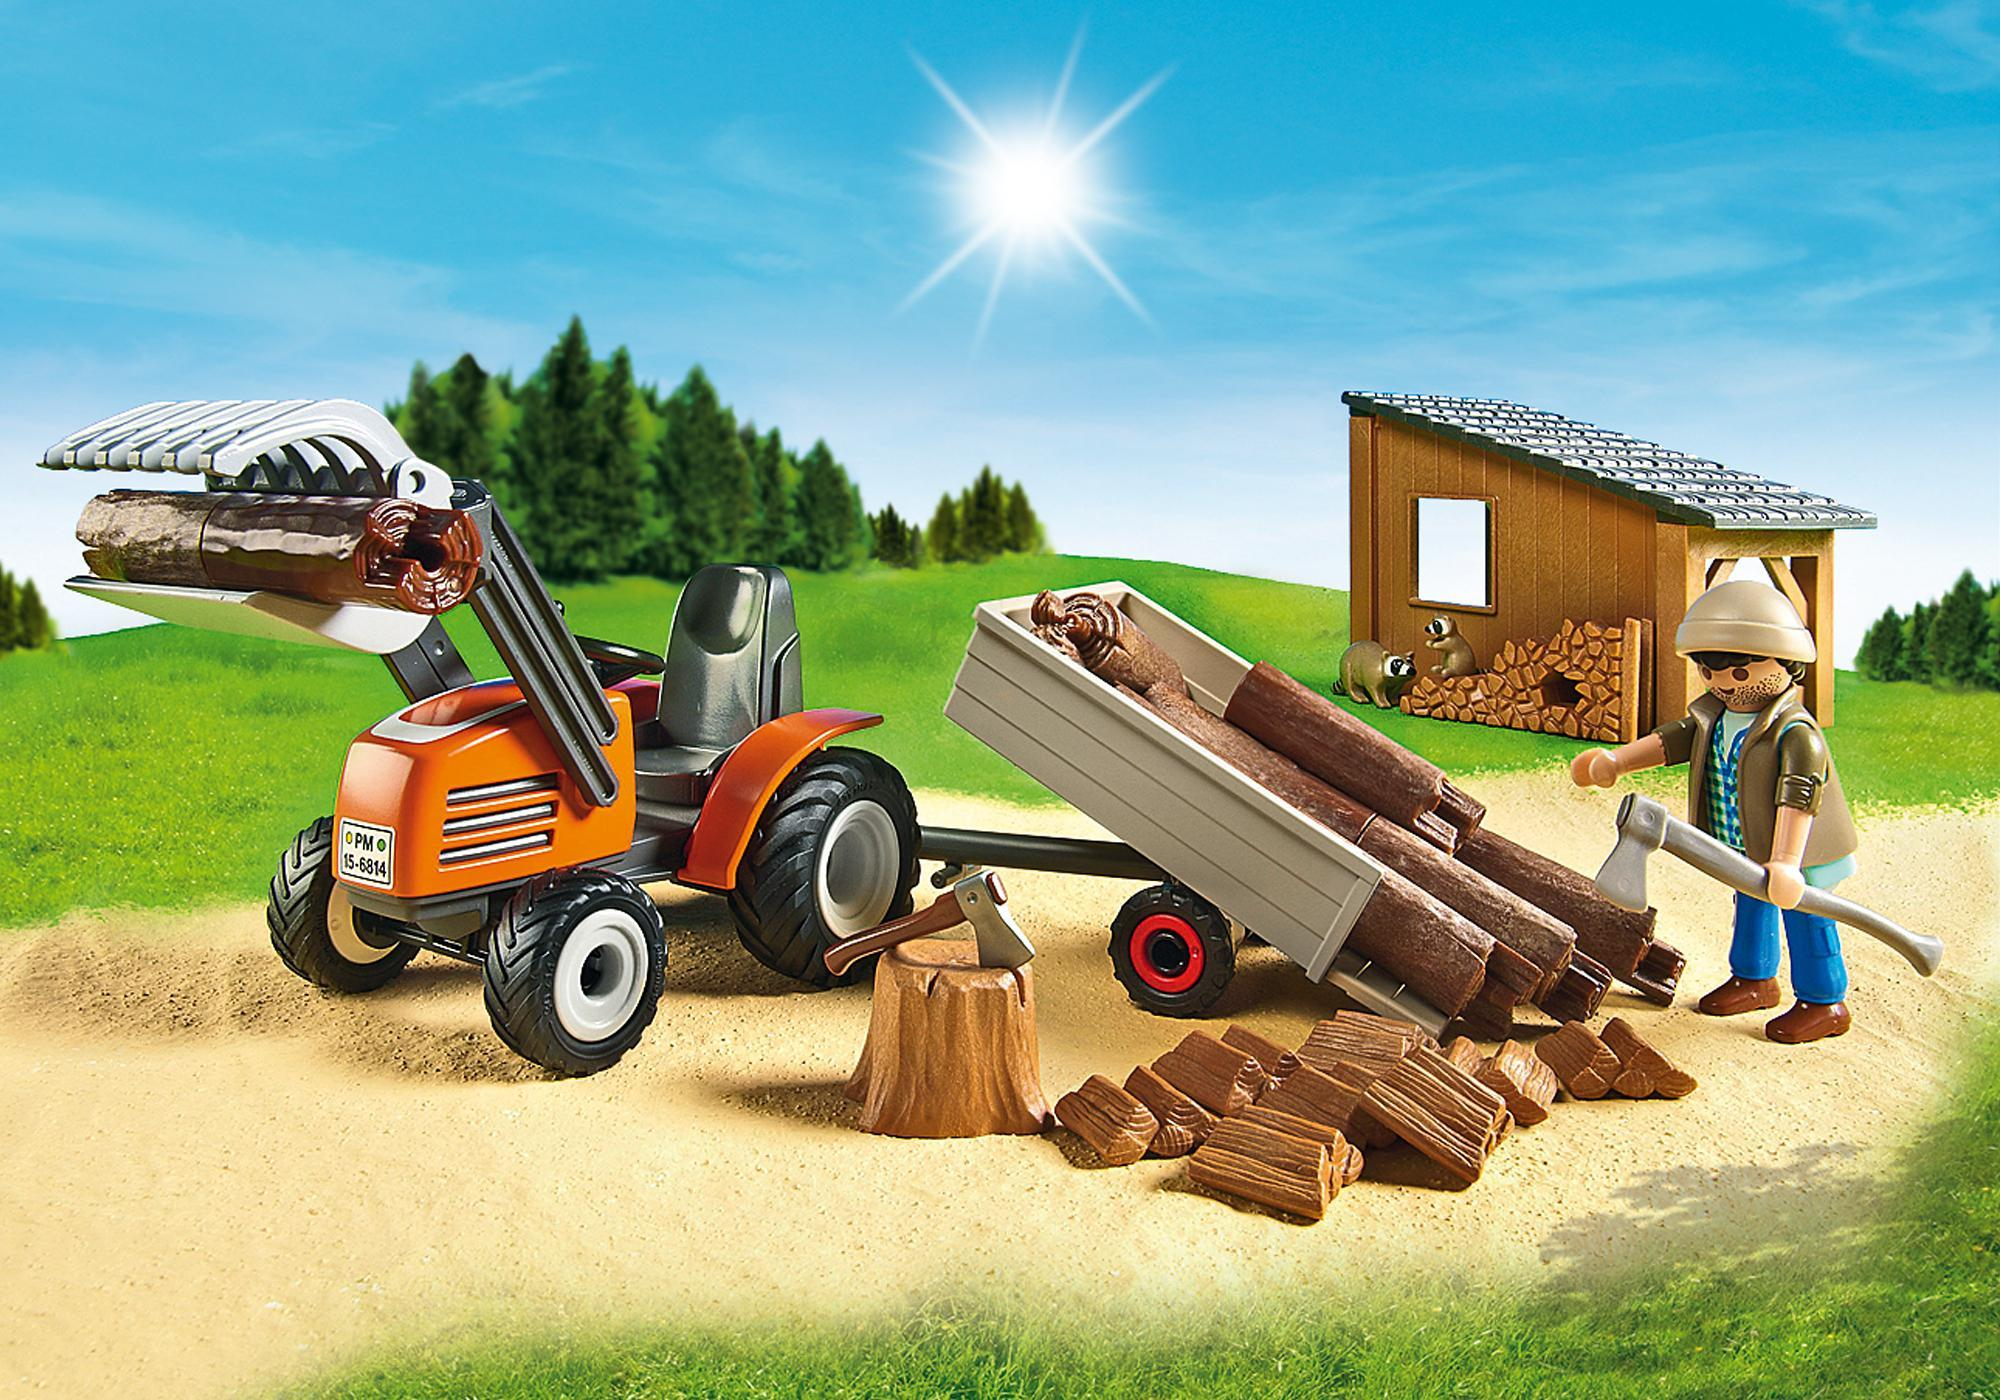 http://media.playmobil.com/i/playmobil/6814_product_extra1/Lumber Yard with Tractor